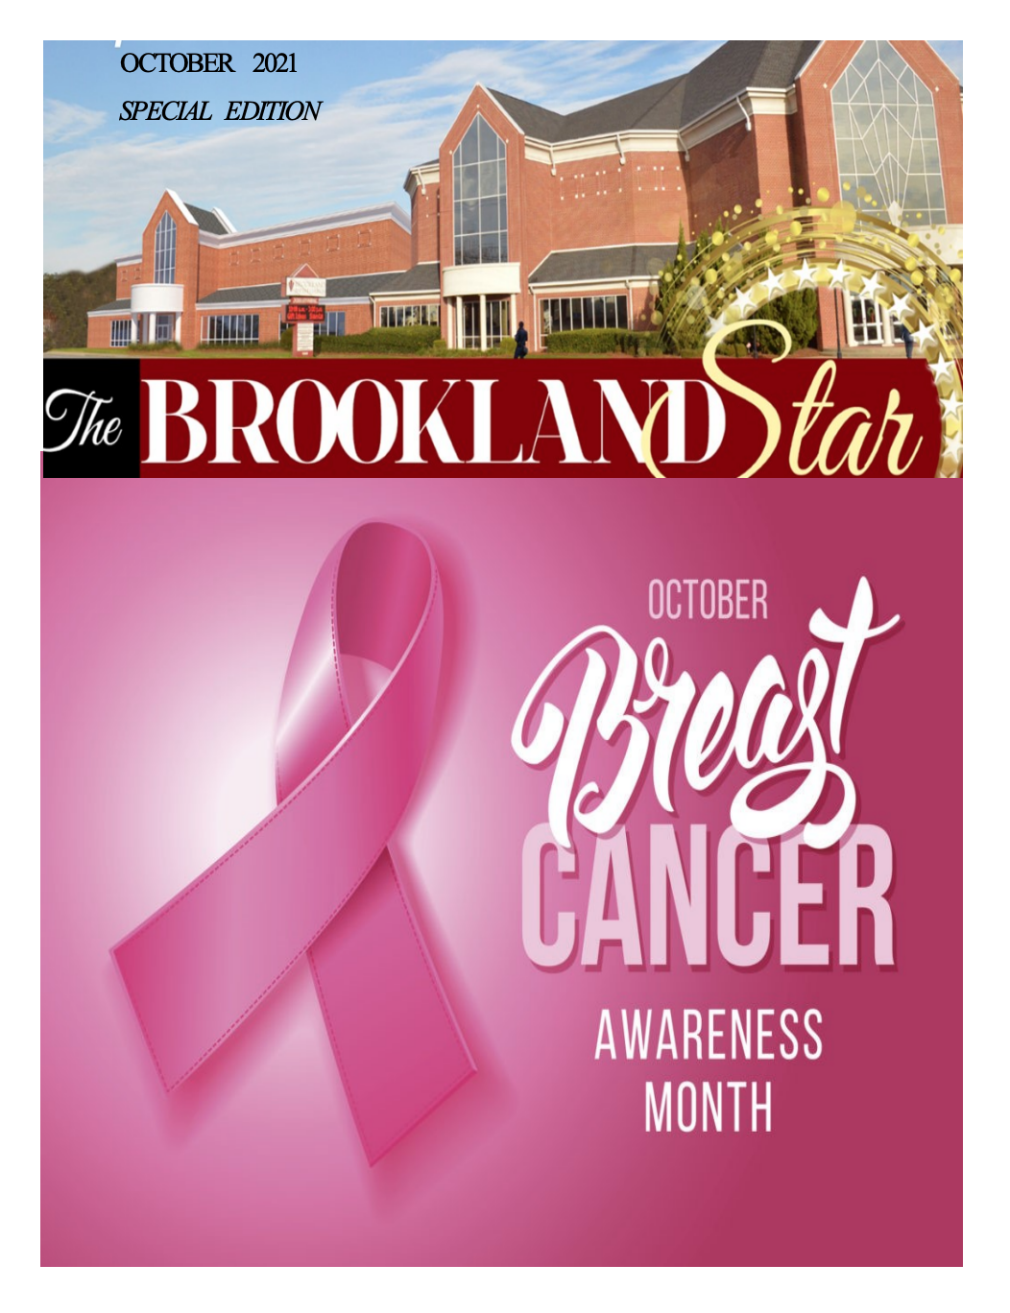 The Brookland Star October 2021 Edition